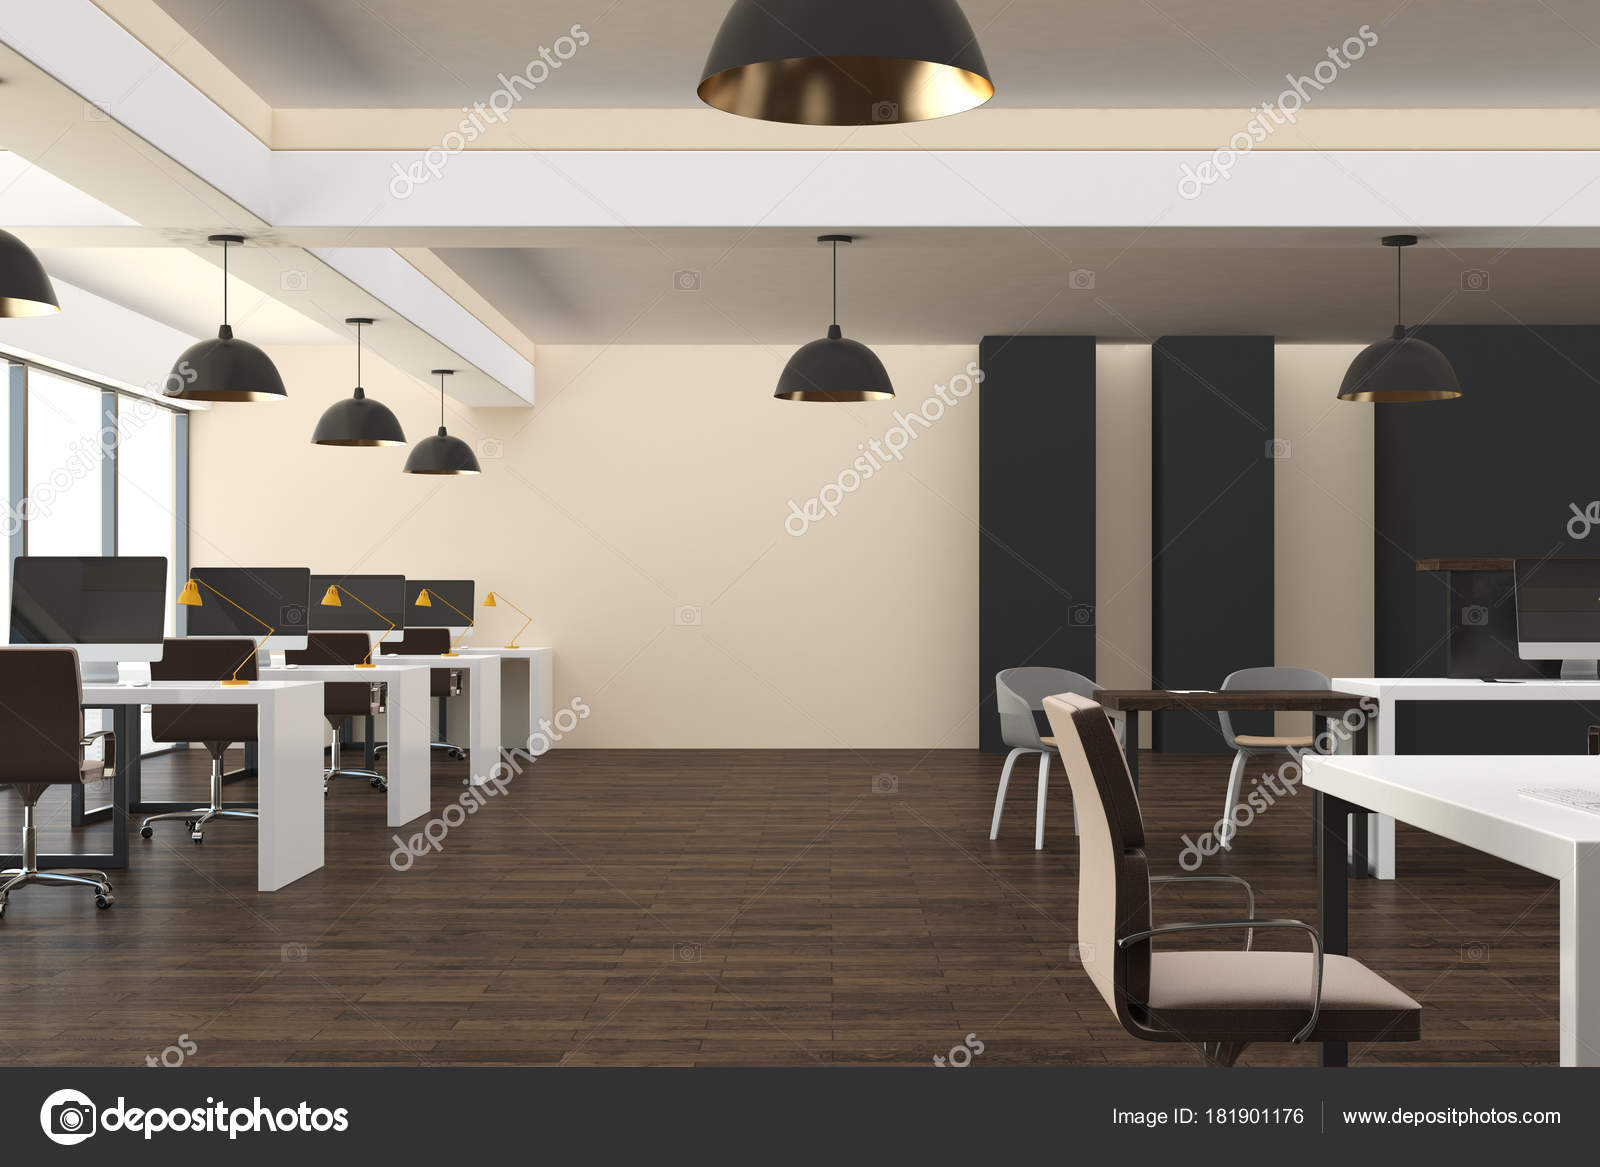 Office interior design concepts Simple Hipster Coworking Office Interior City View Daylight Occupation Design Concept Stock Photo 99xonline Hipster Coworking Office Interior City View Daylight Occupation